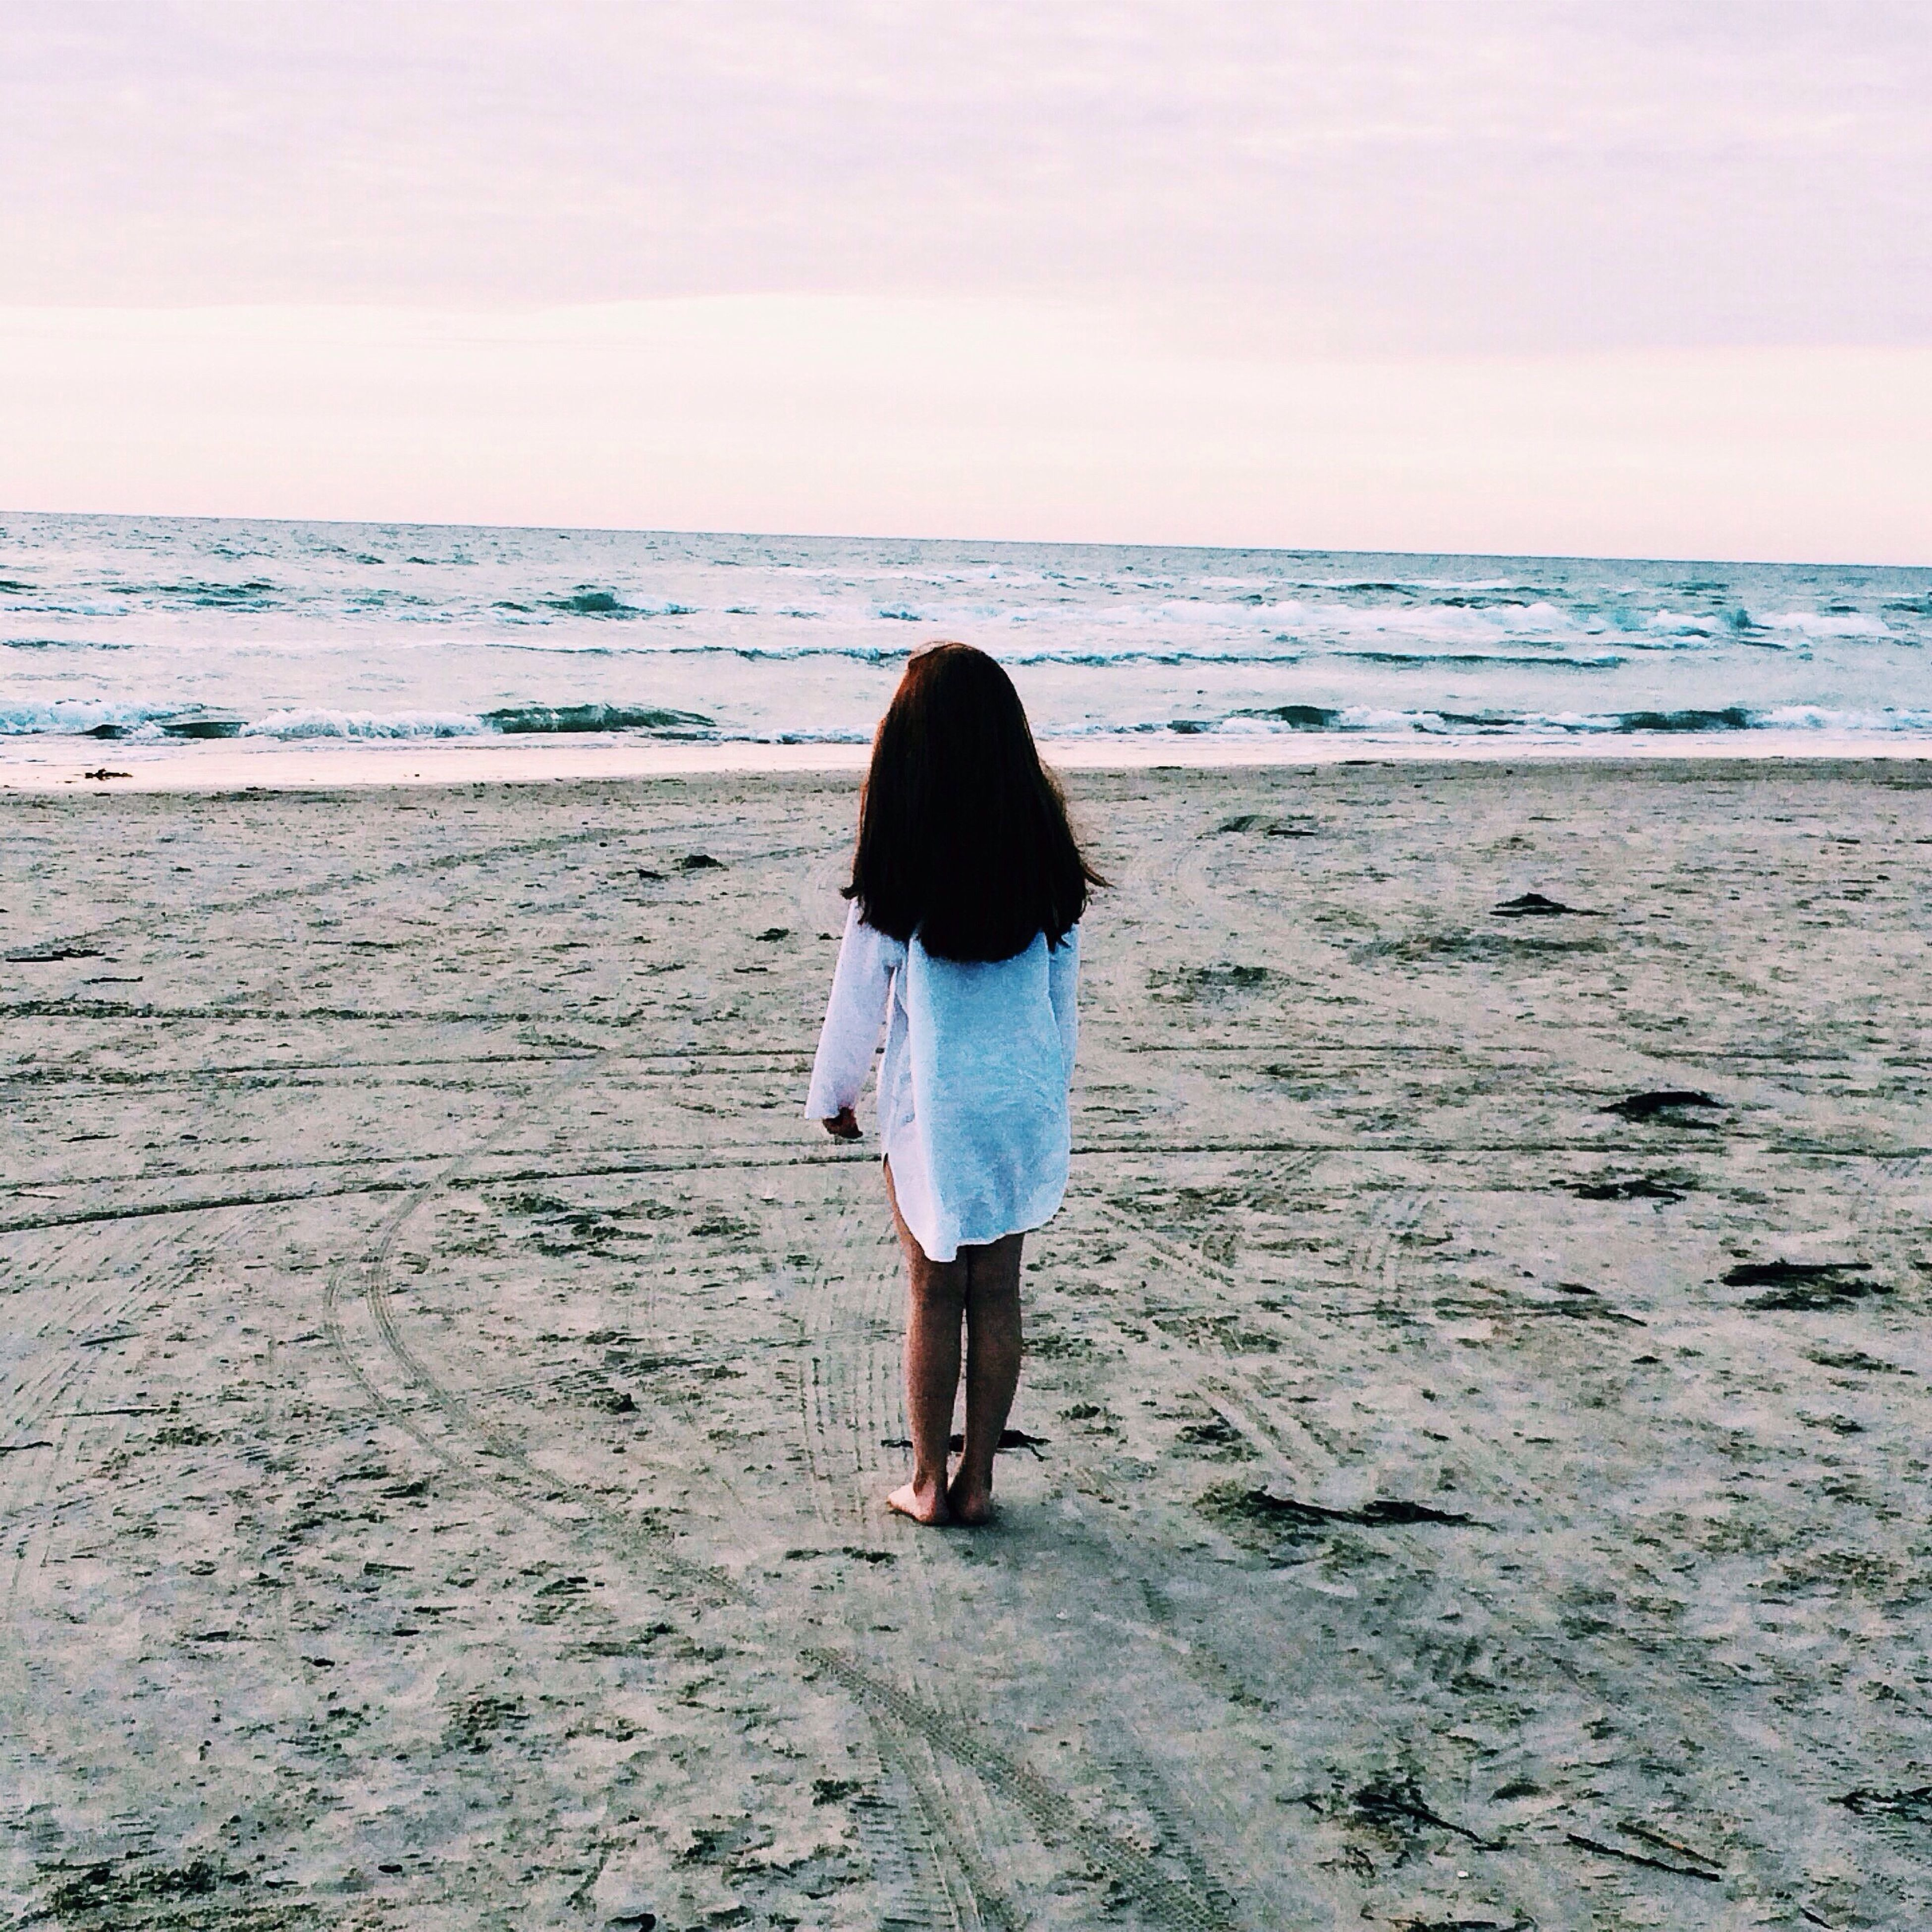 beach, sea, rear view, full length, horizon over water, standing, shore, lifestyles, sky, sand, tranquility, leisure activity, water, tranquil scene, walking, casual clothing, beauty in nature, person